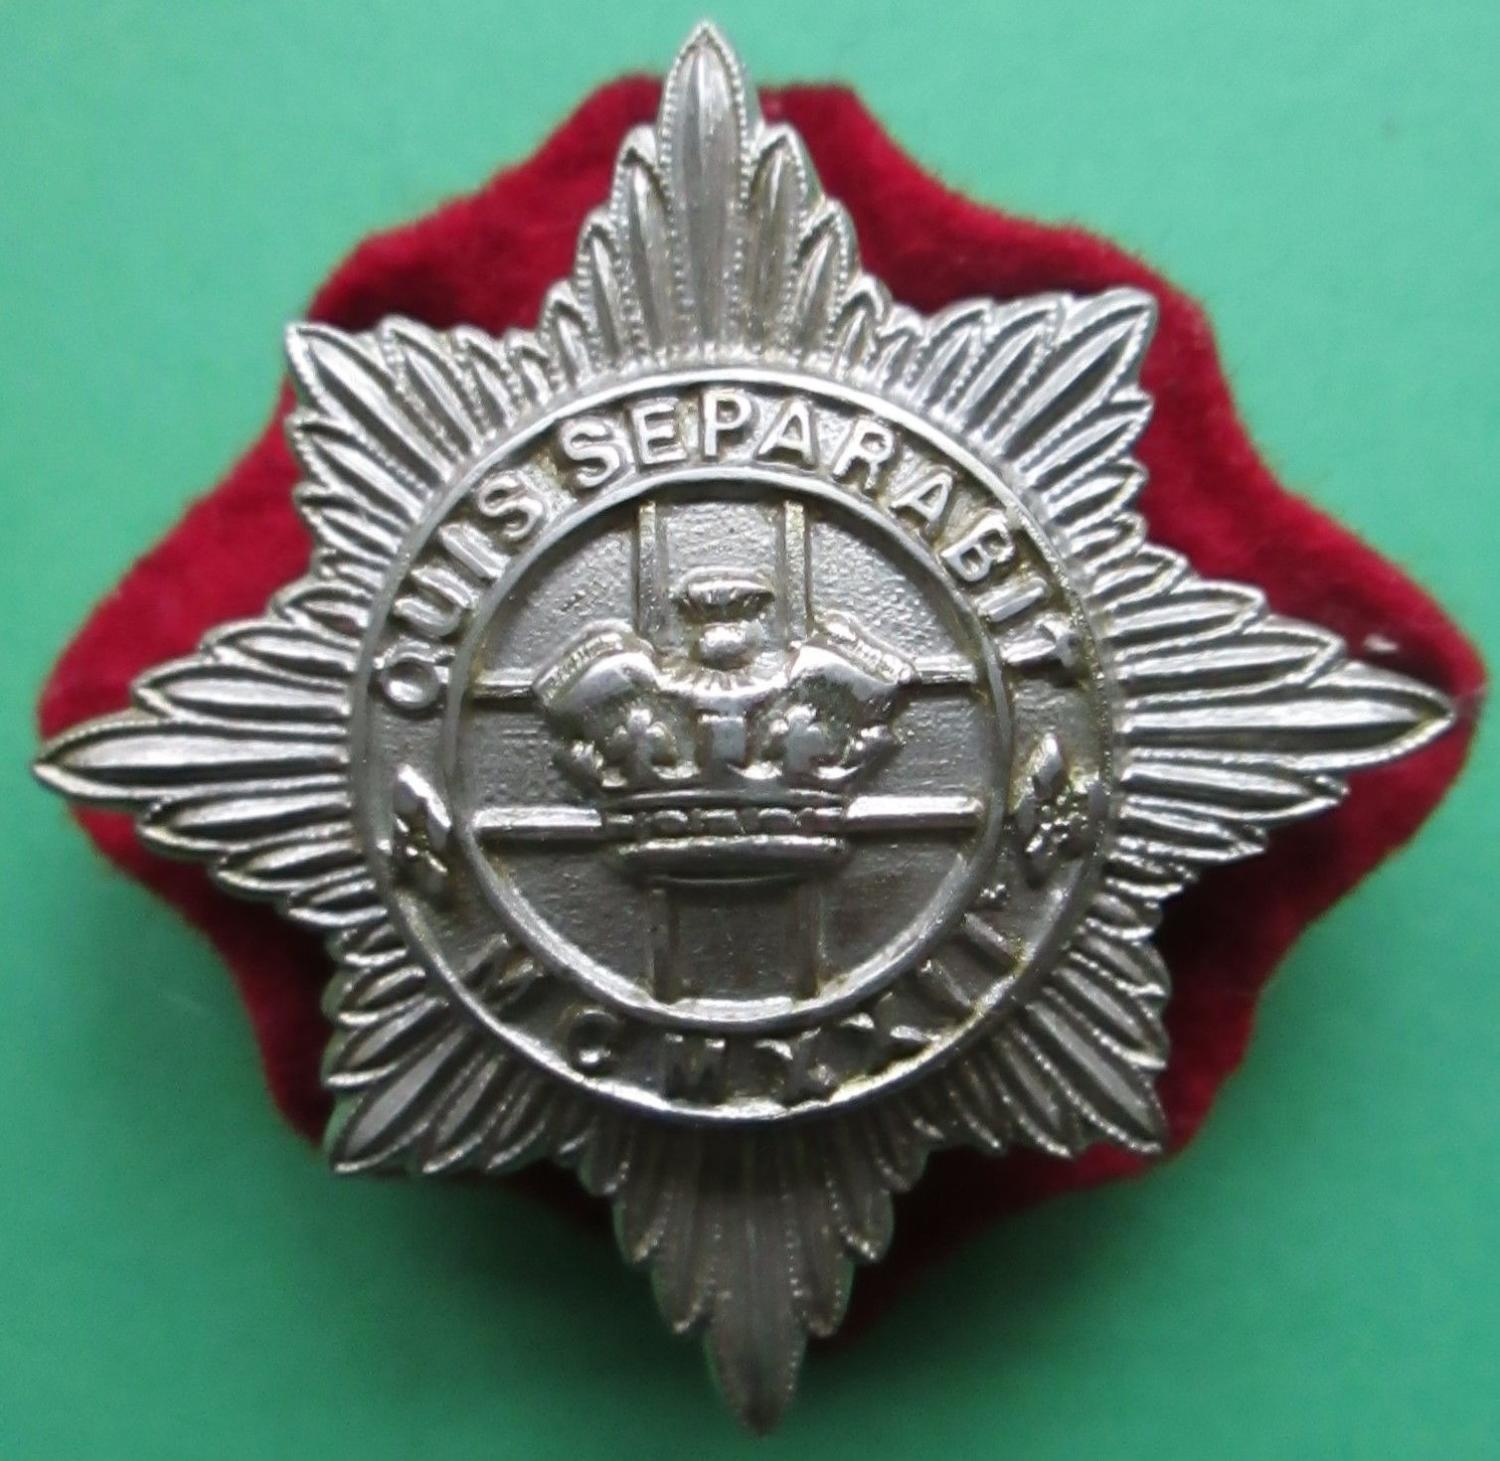 A 4TH / 7TH HUSSARS OTHER RANKS CAP BADGE WITH ITS RED BACKING CLOTH